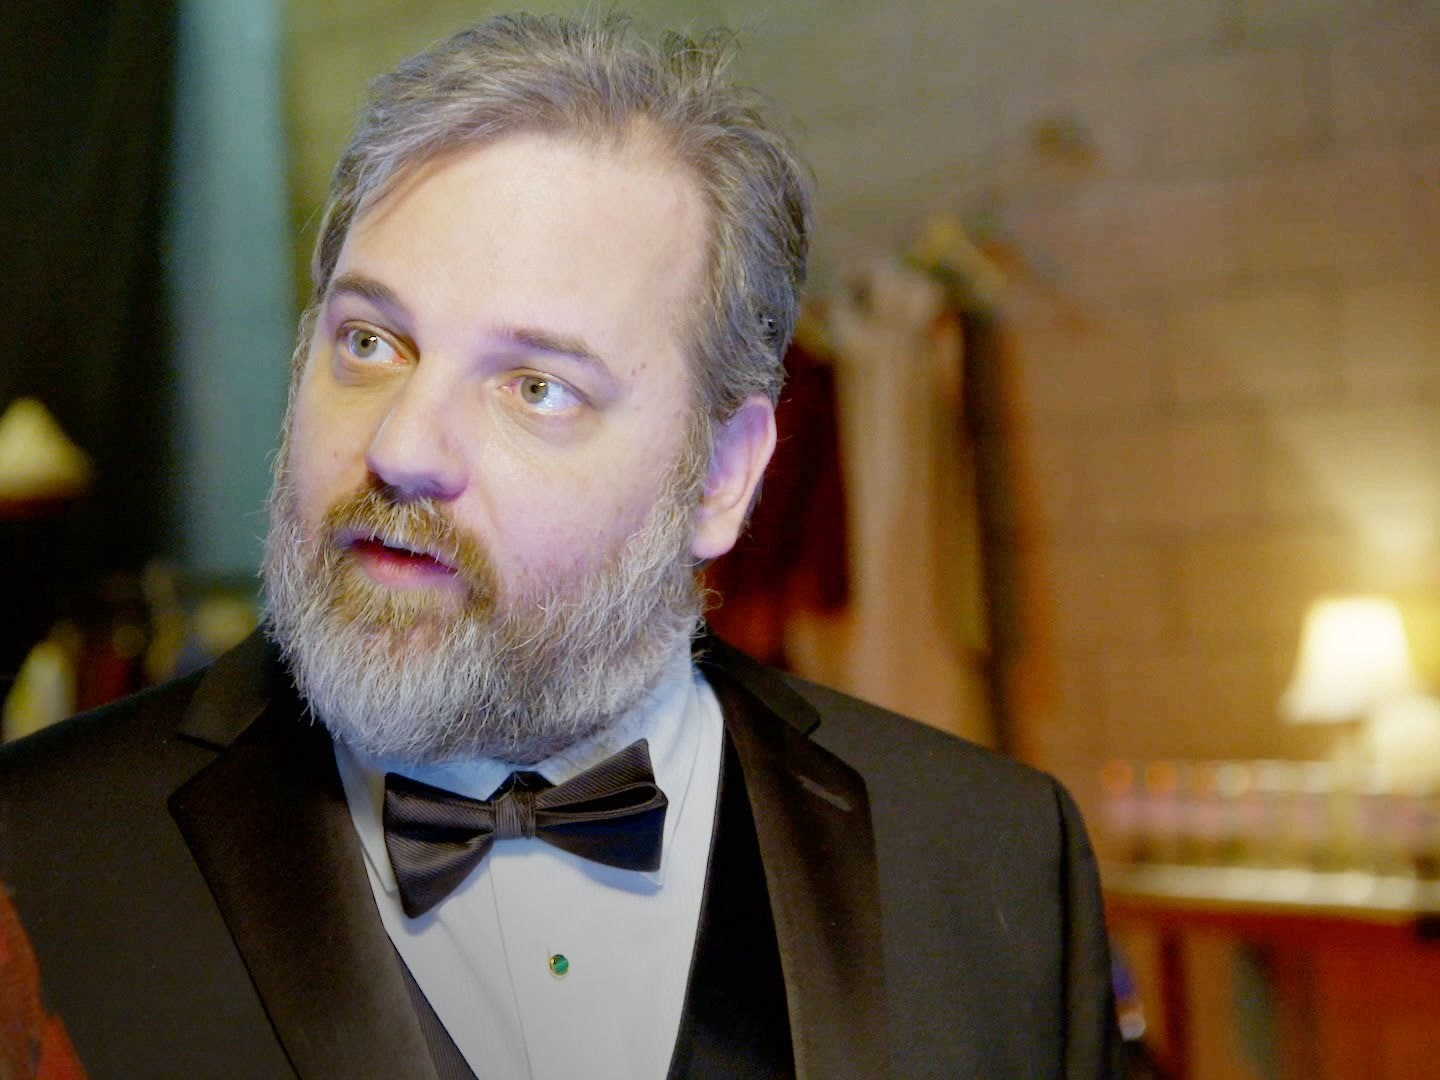 Dan Harmon Has the Voice the History Channel Always Needed